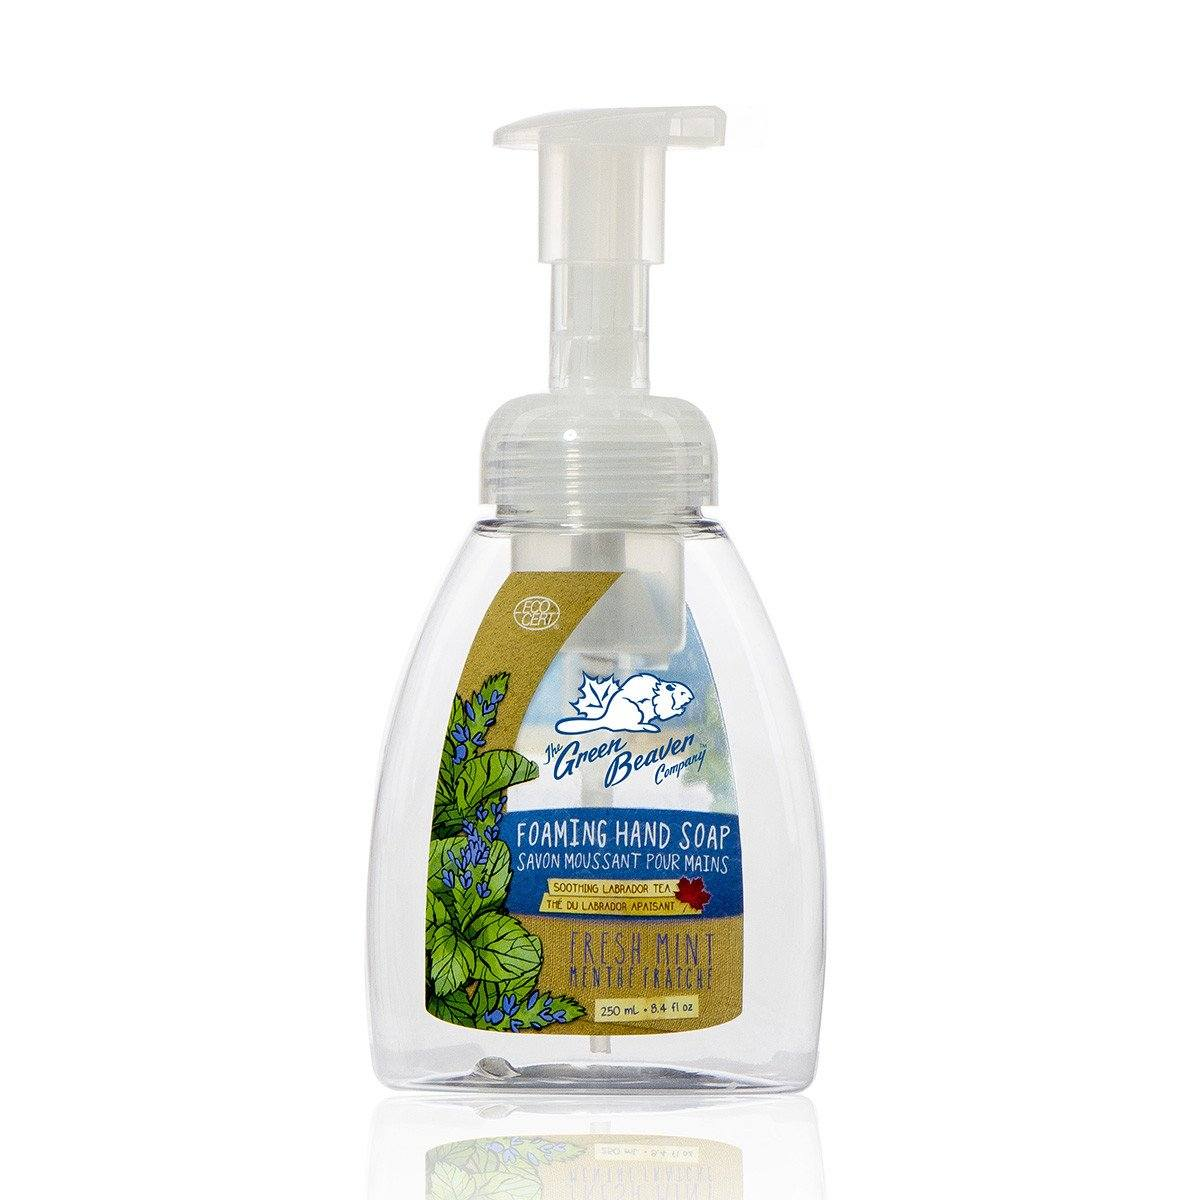 Personal Care,Gluten Free,Vegan,Vegetarian - Green Beaver - Fresh Mint Foaming Handwash, 250 Ml